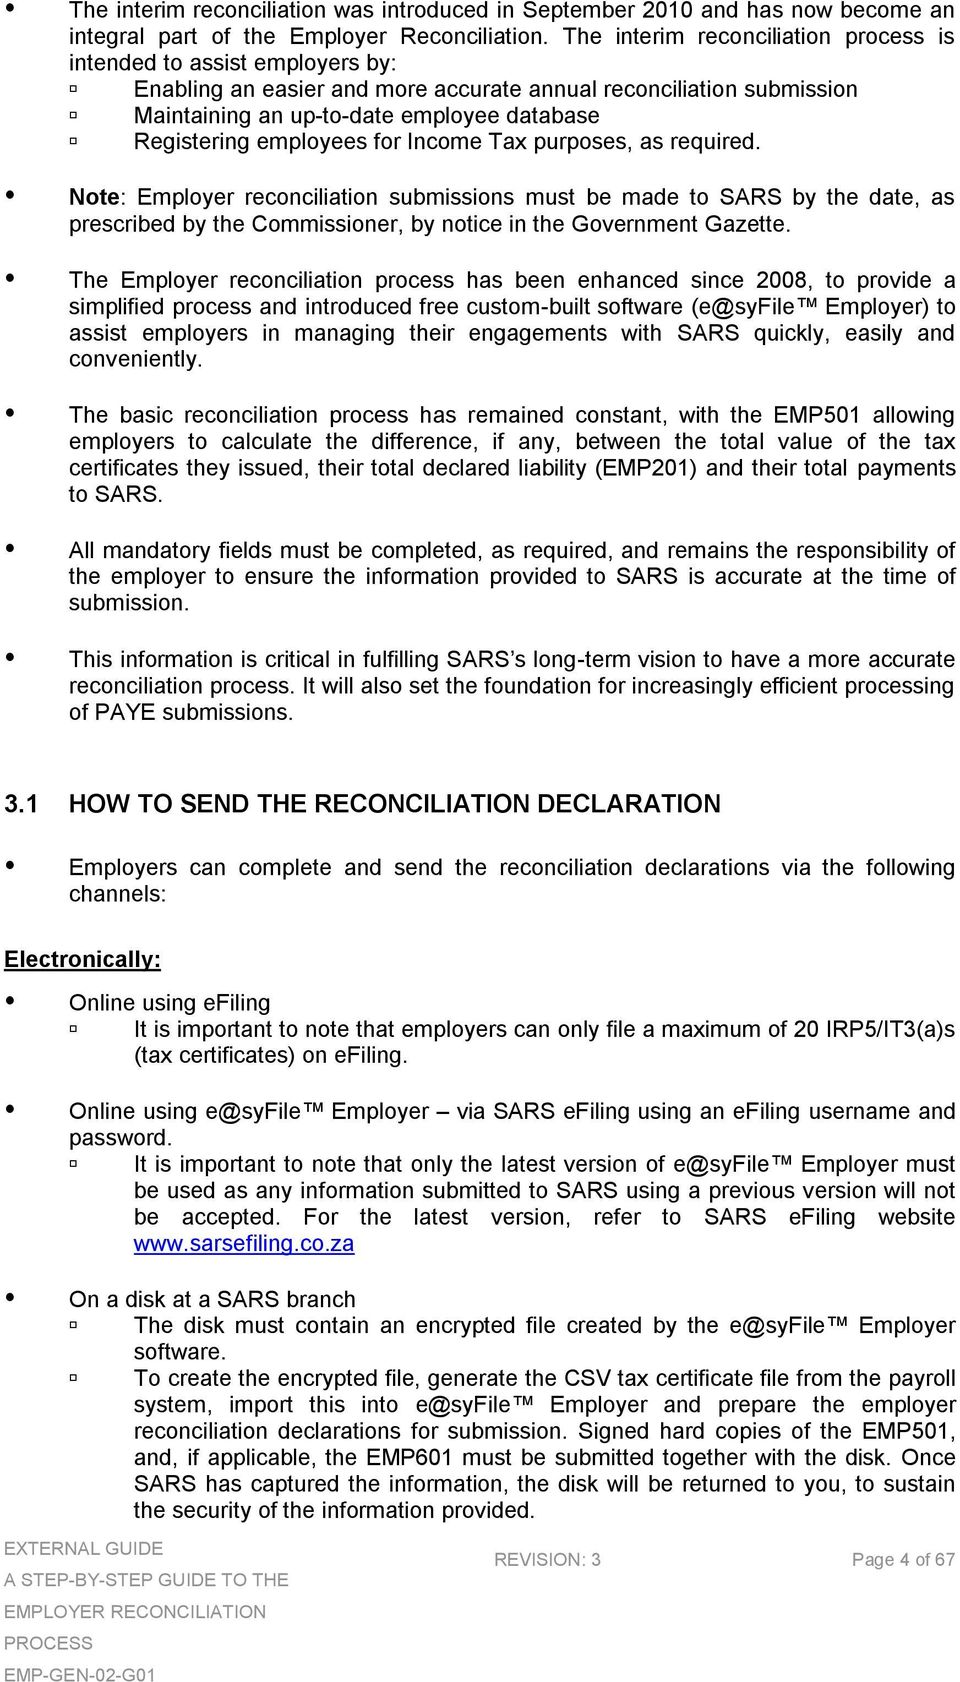 employees for Income Tax purposes, as required. Employer reconciliation submissions must be made to SARS by the date, as prescribed by the Commissioner, by notice in the Government Gazette.